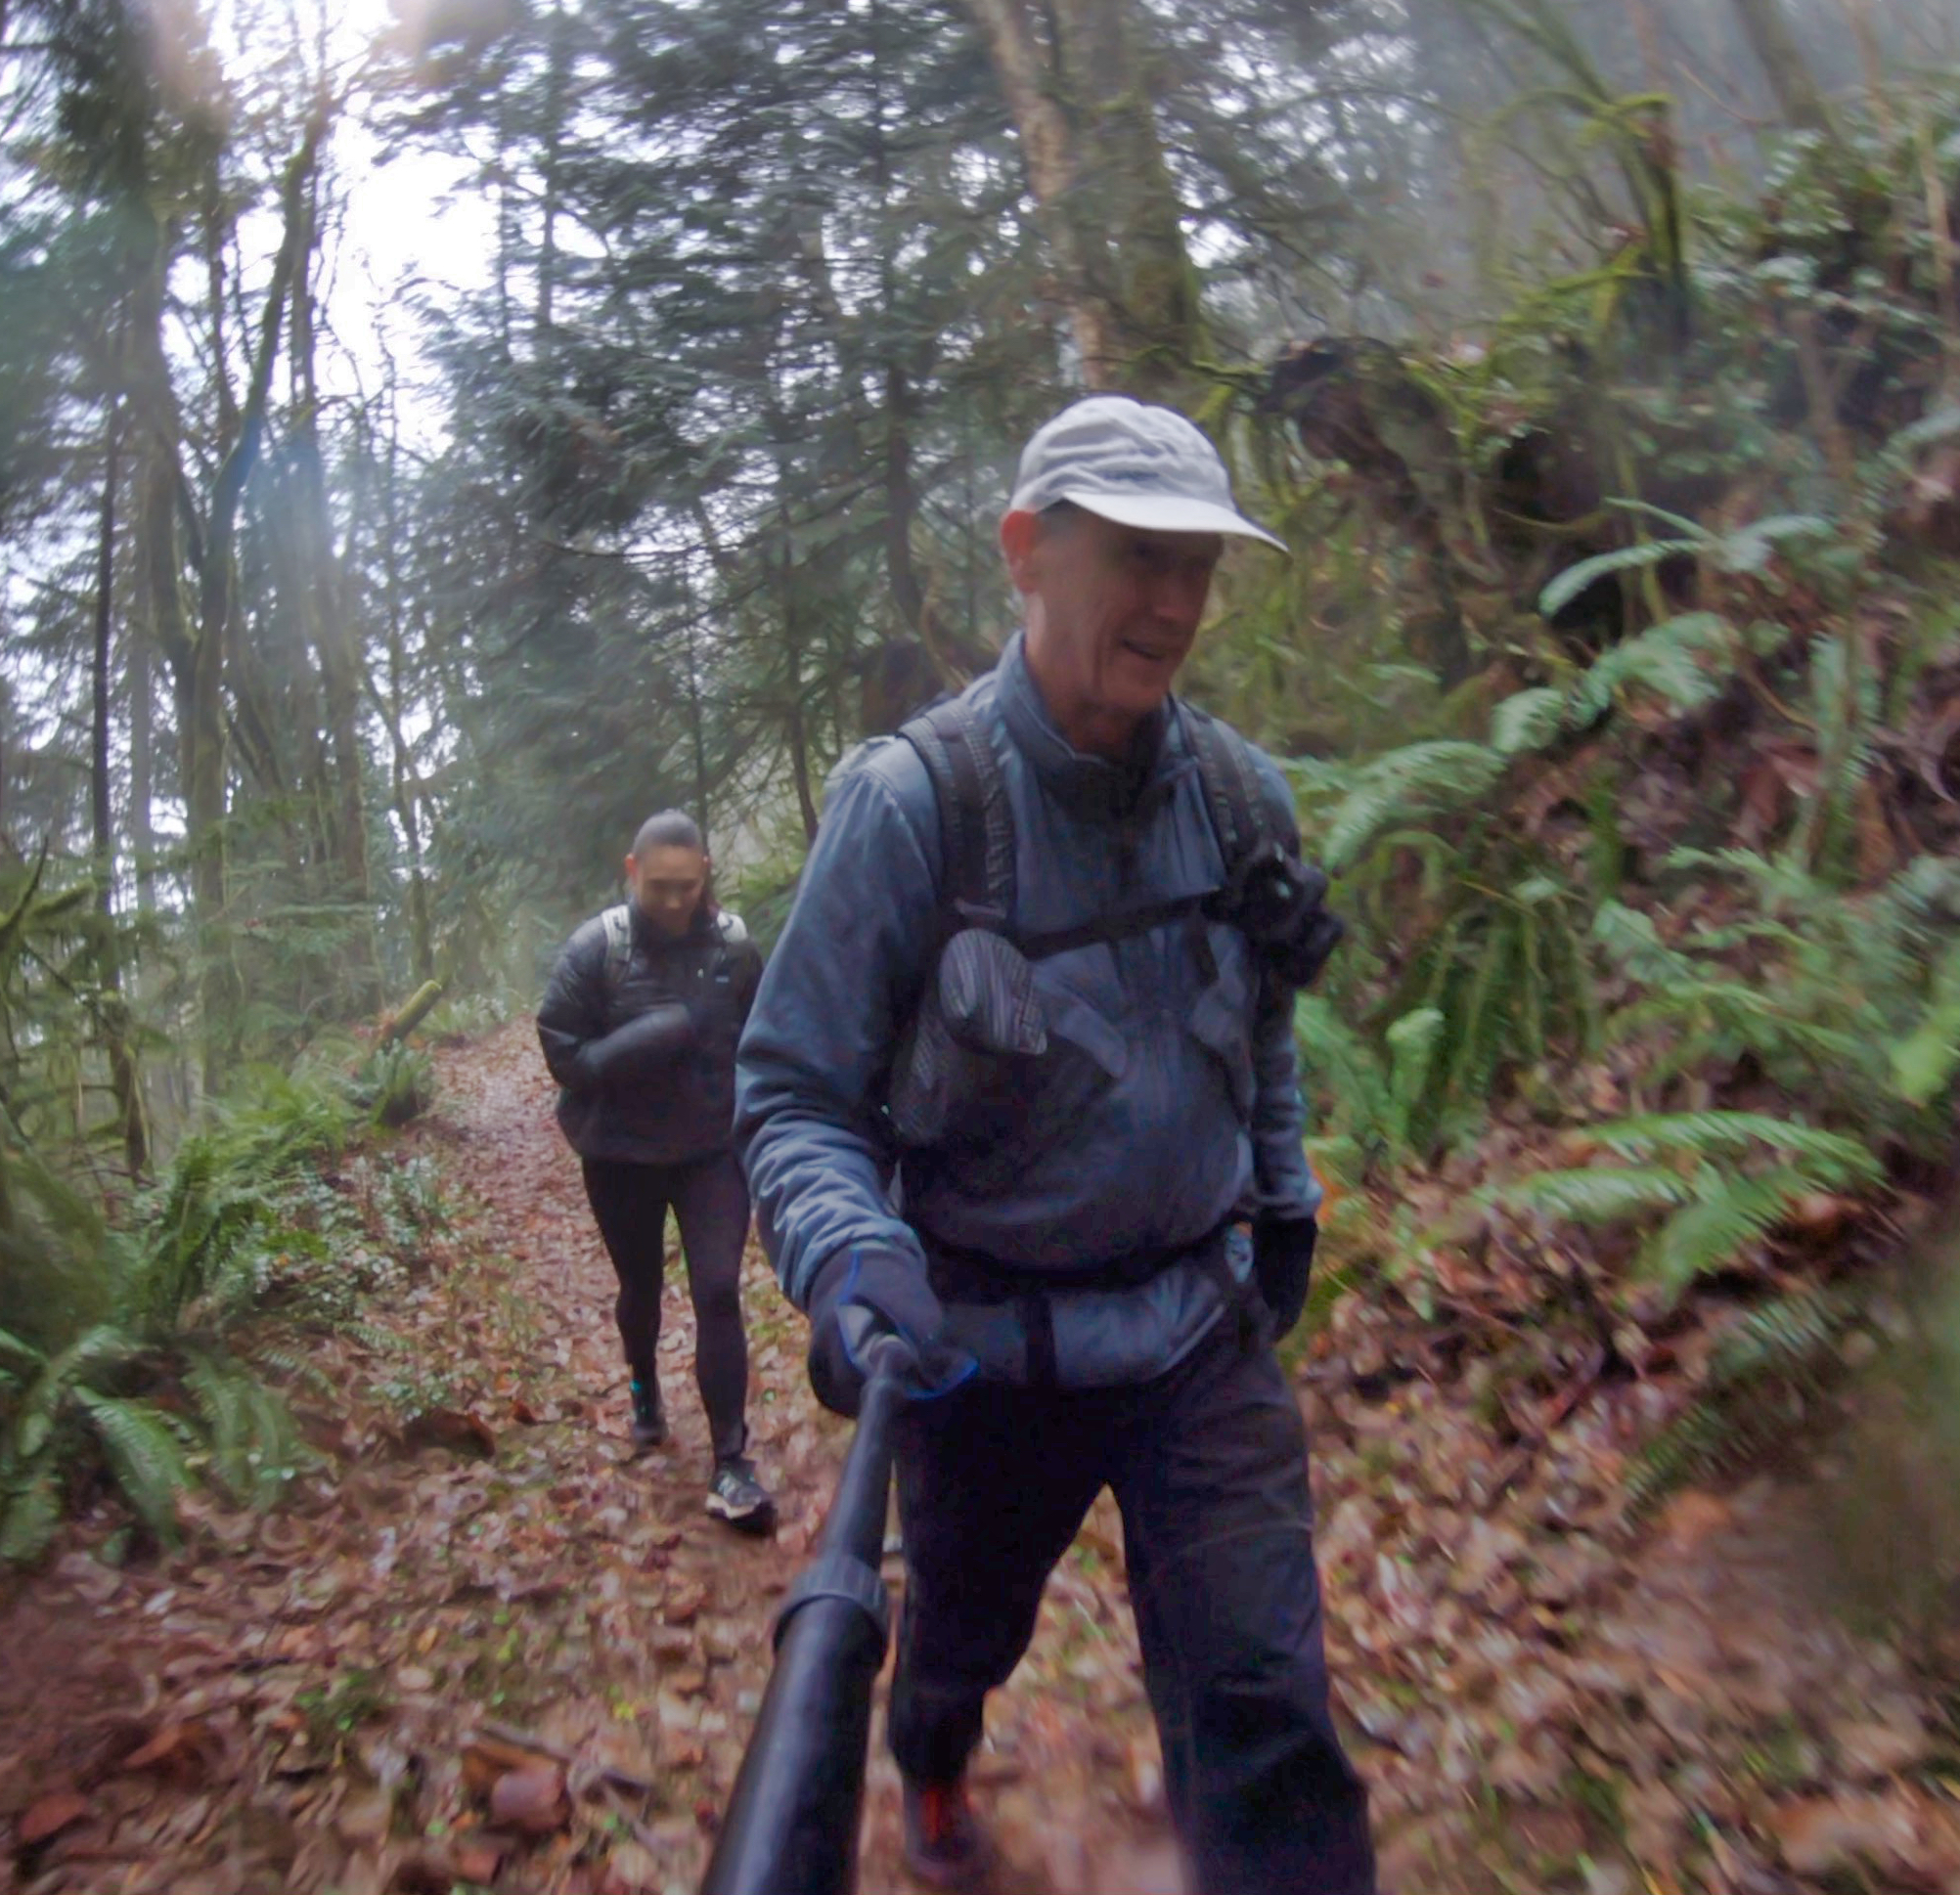 Beyond Polartech Alpha jacket on 19 mile hike with 3600' of climb, stayed on whole hike (low 40's)